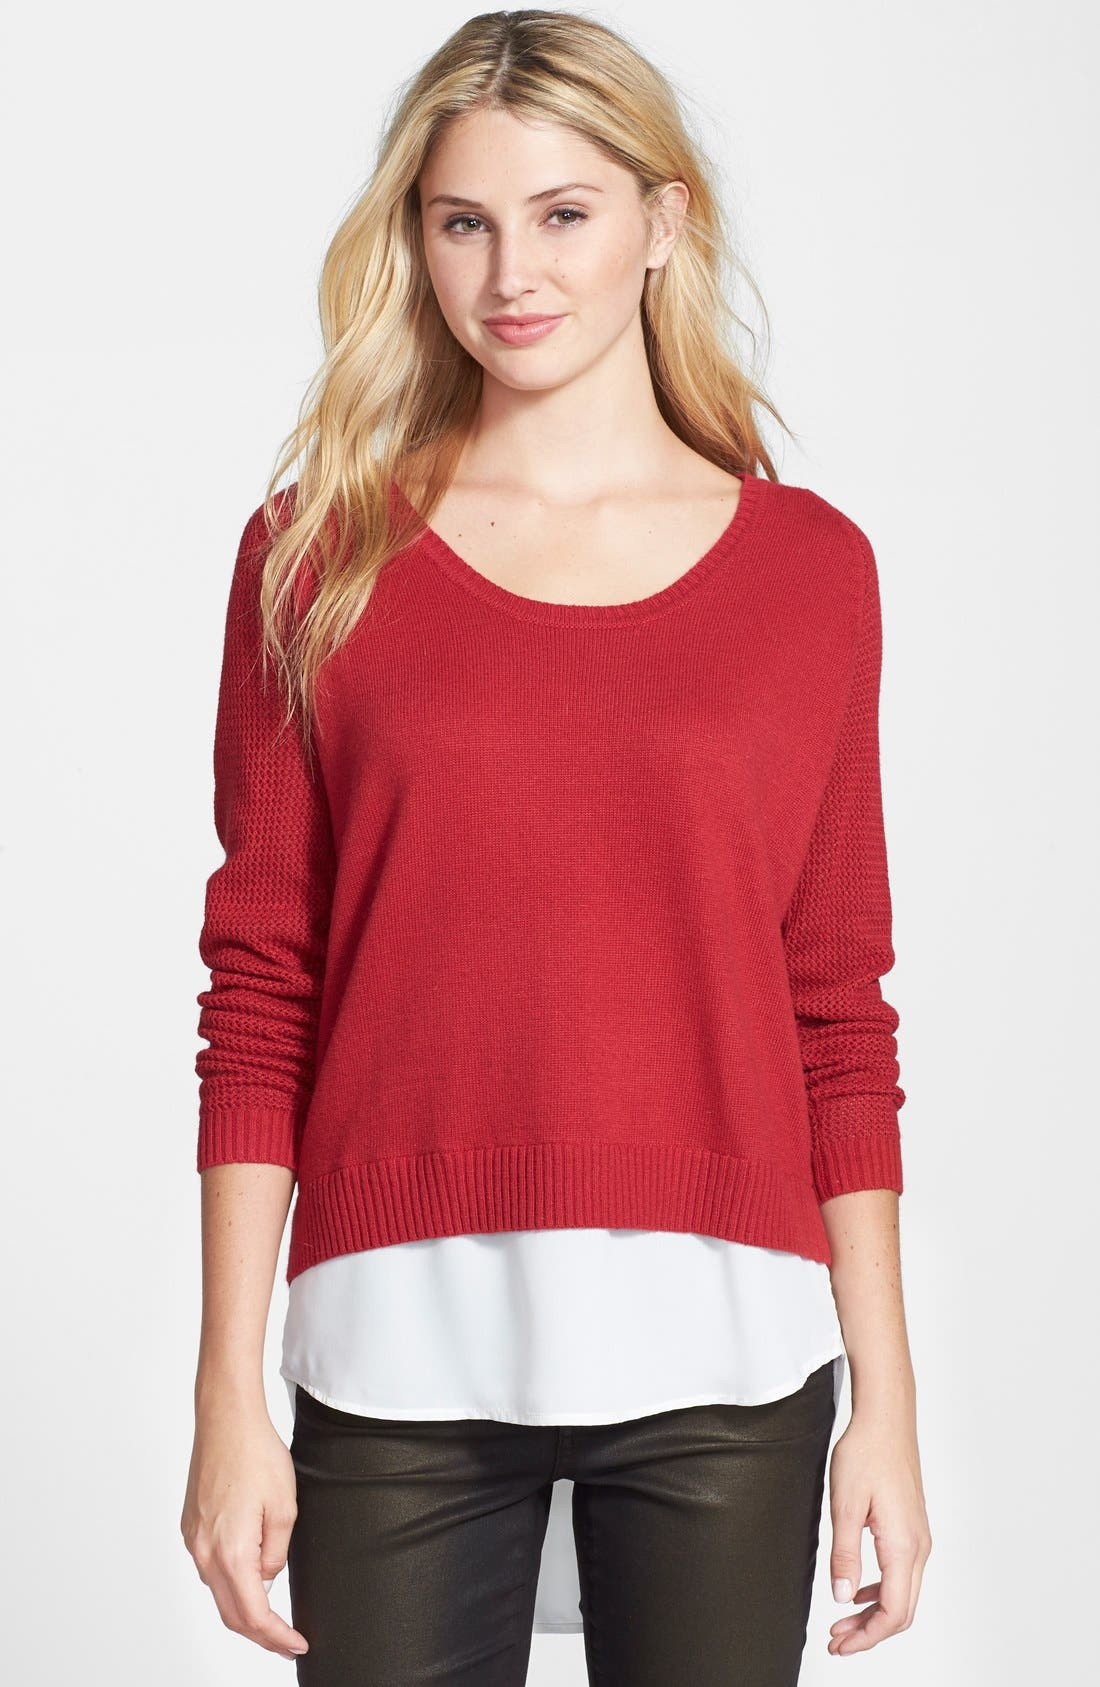 Alternate Image 1 Selected - DKNYC Layer Look Textured Sleeve Sweater